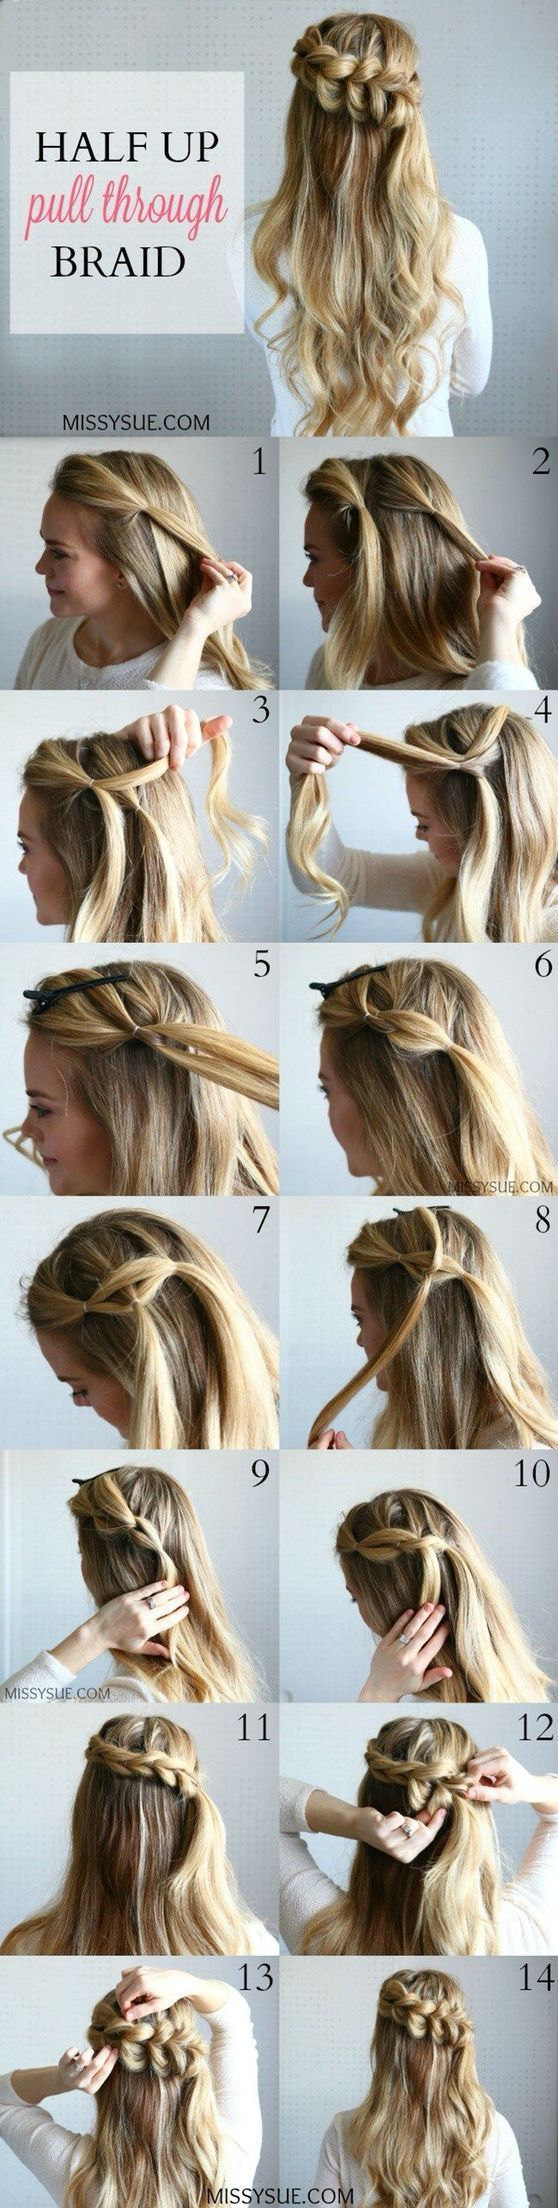 Hair Tutorials  Pull through braid Hair Tutorials  Pull through braid